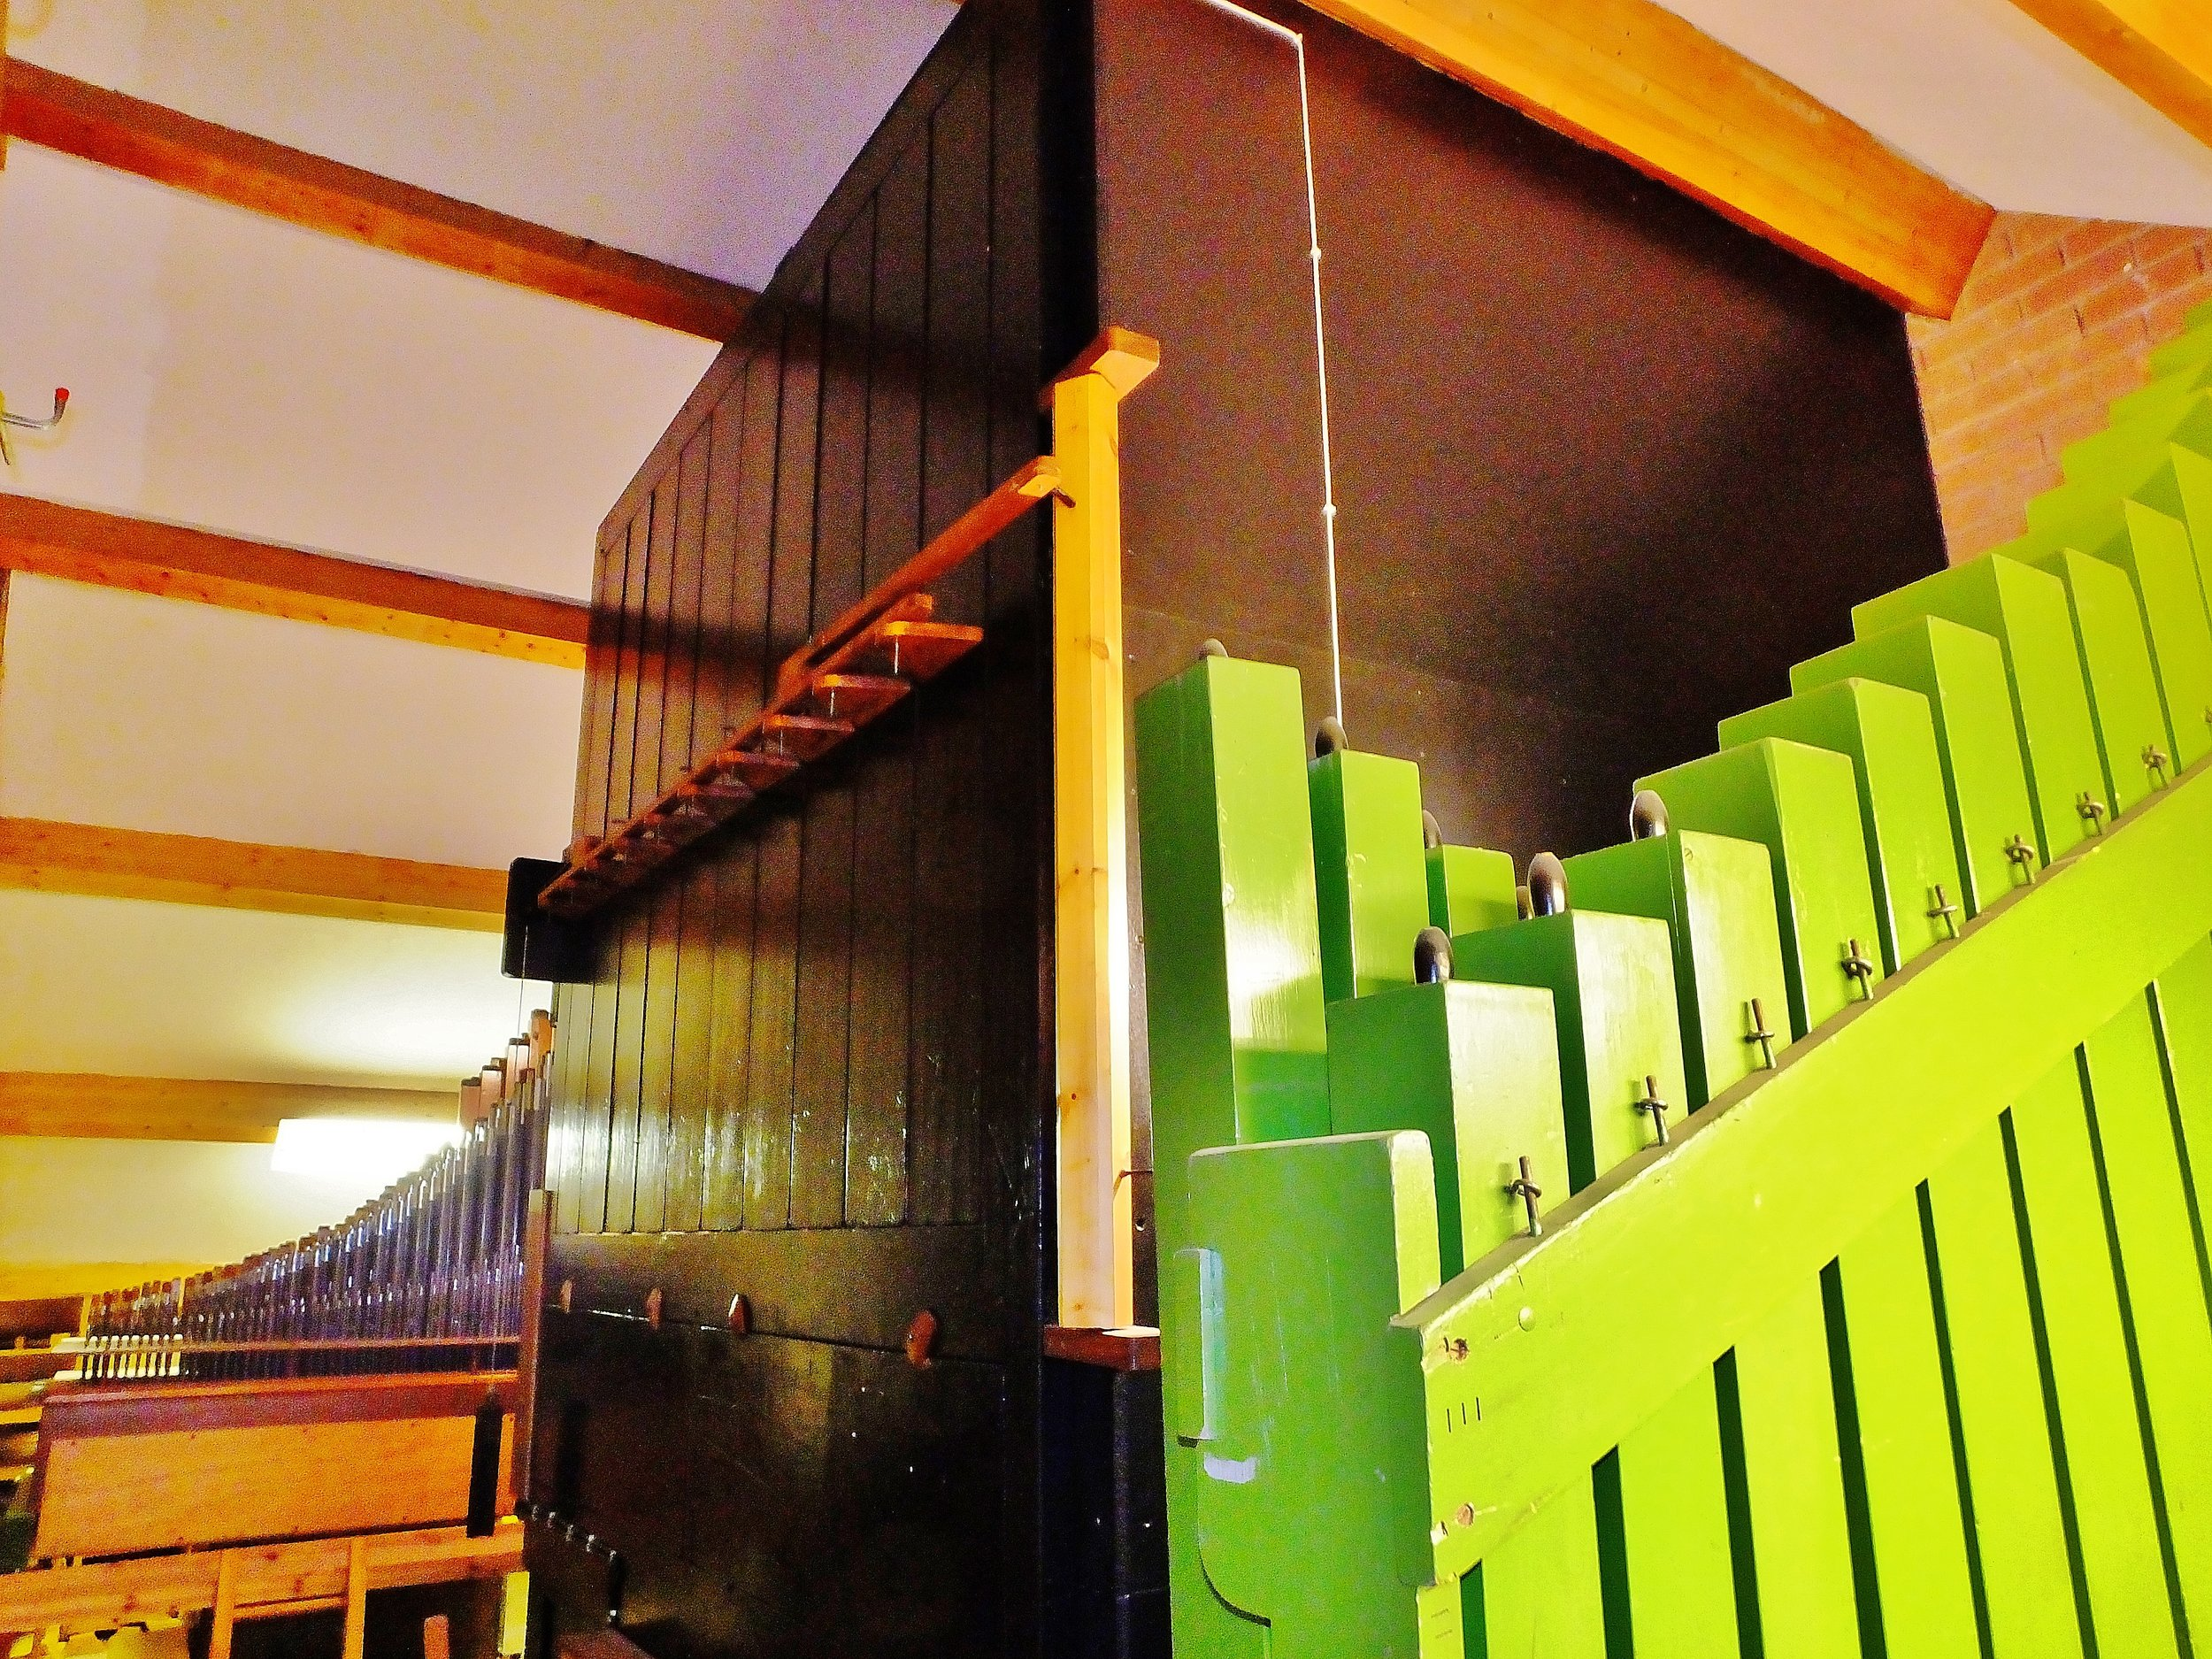 This is a good view of the pipes in the Organ Loft. In the background are metal pipes of the Great Organ. The Black very large cabinet is the Swell box which contains many pipes and the louvres can be opened to increase the volume. The green pipes are the bourdon pedal pipes